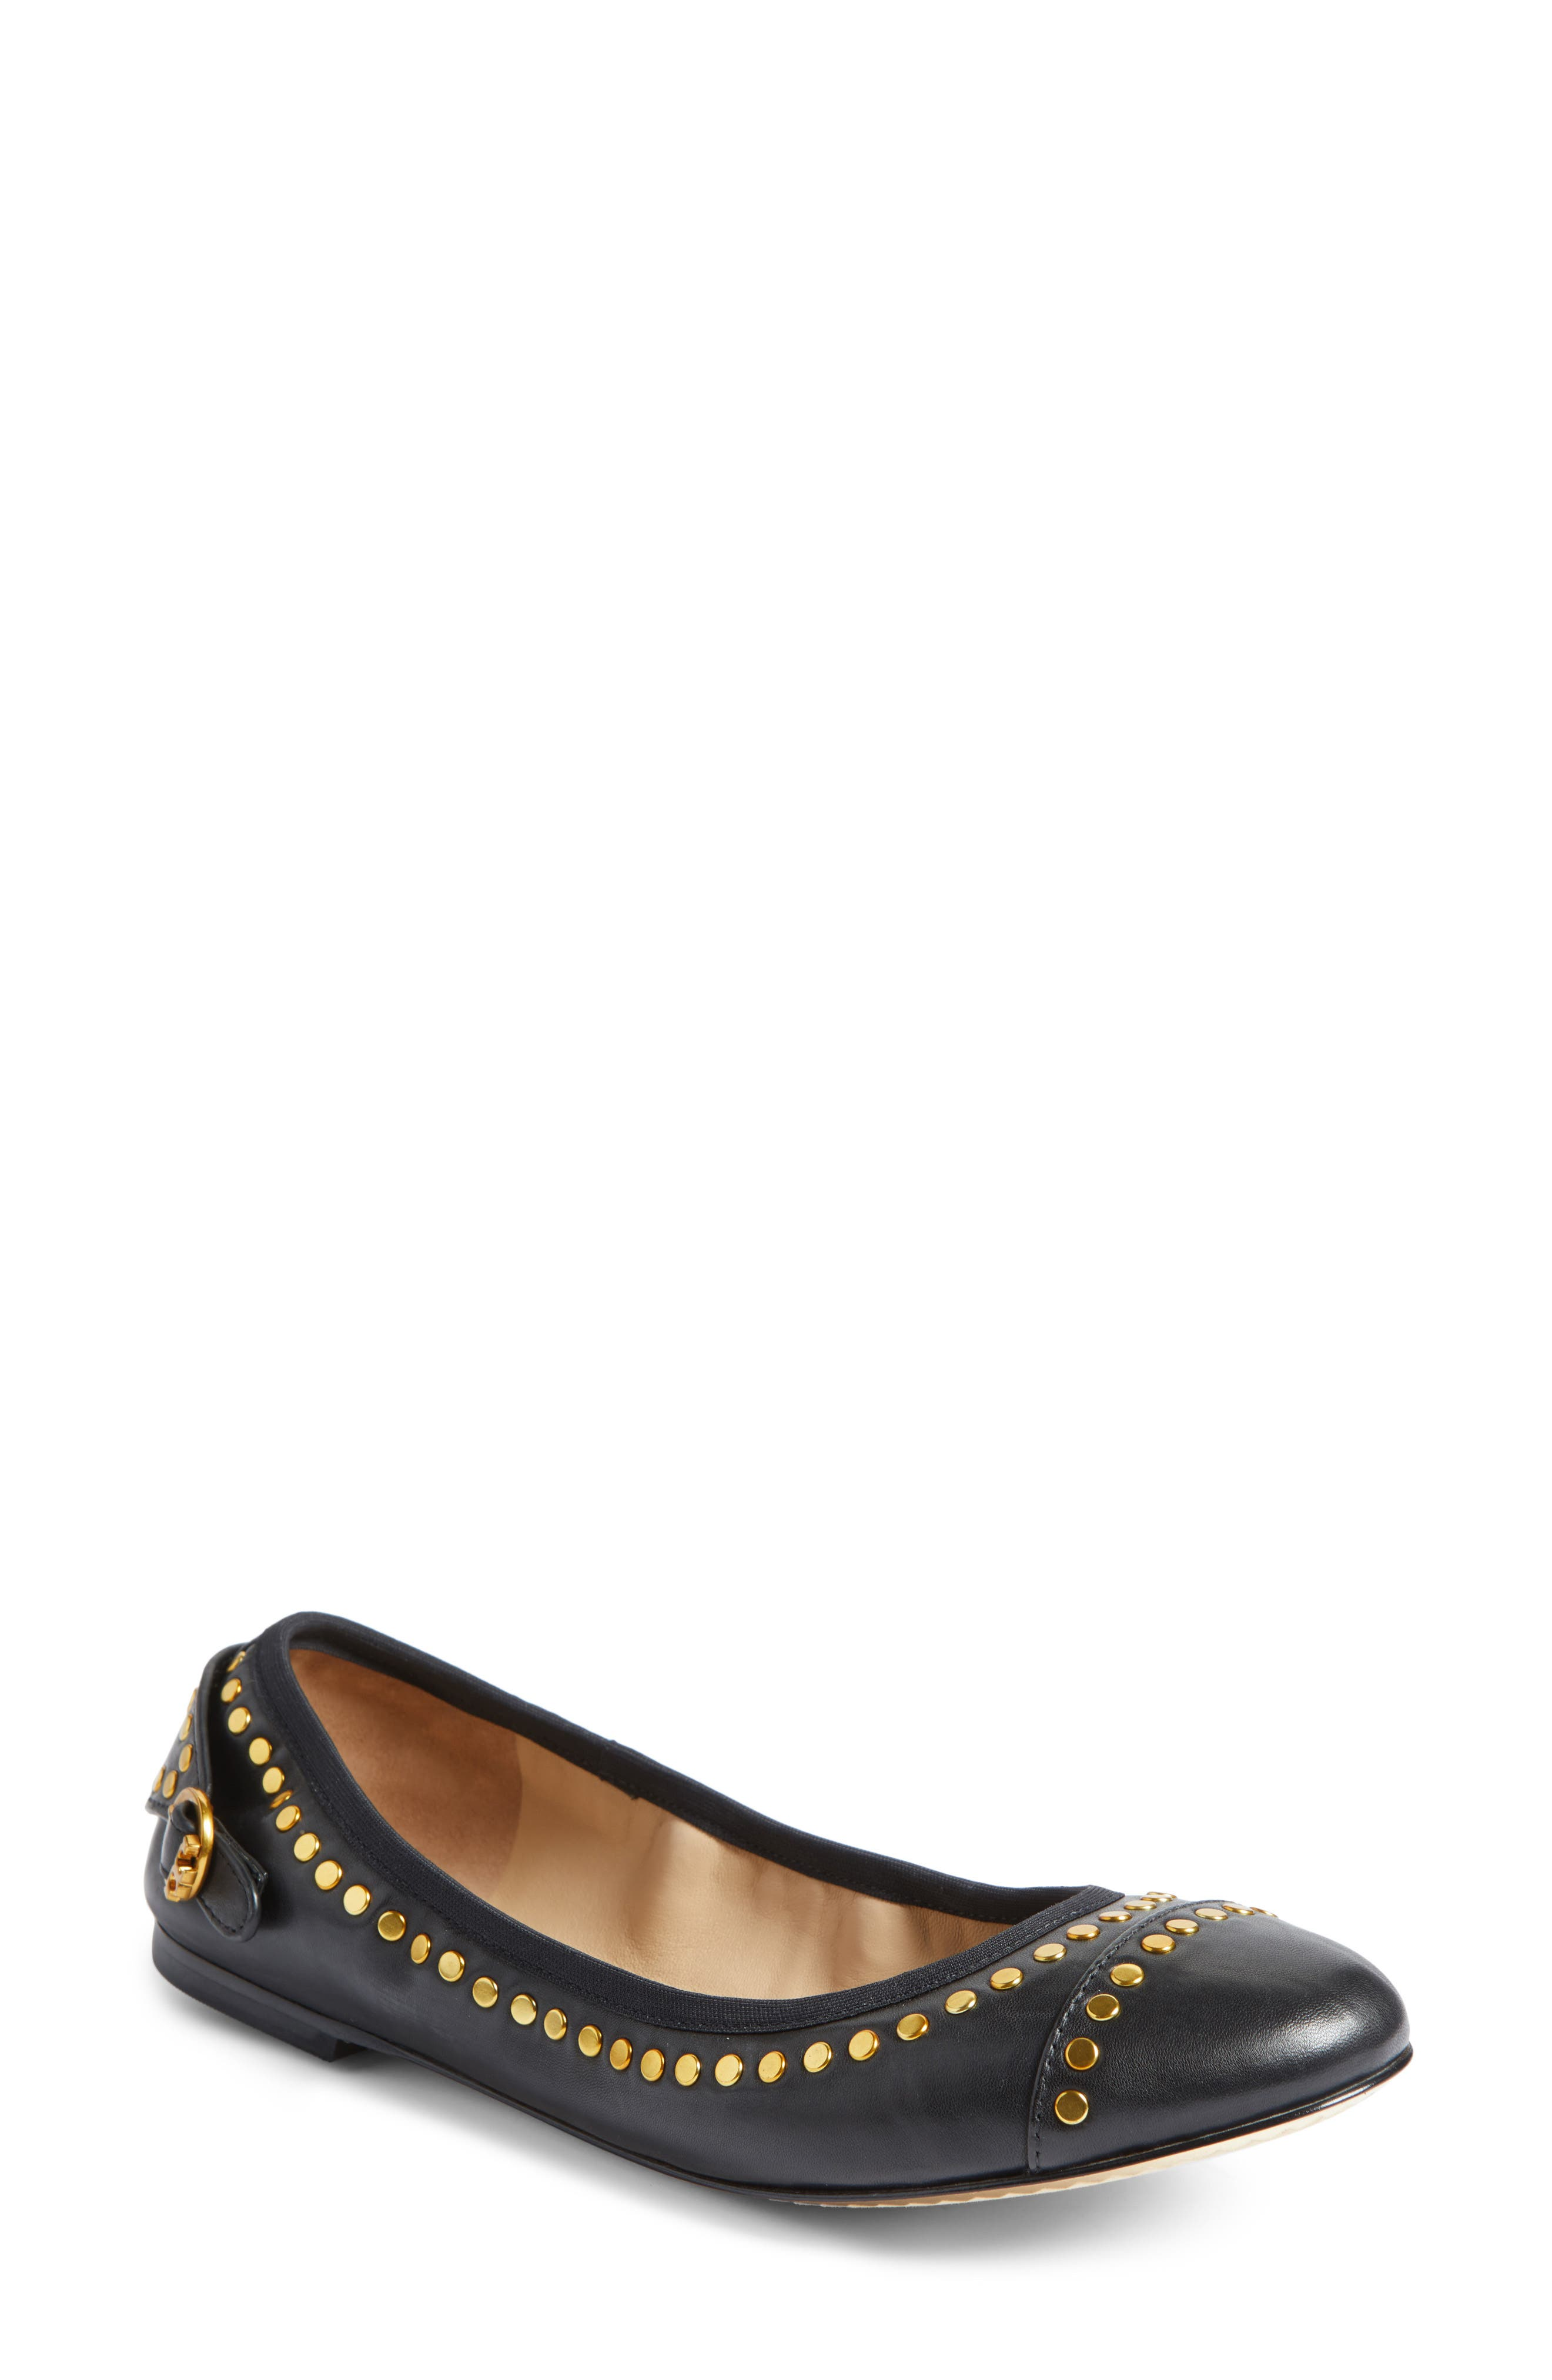 Holden Studded Cap Toe Flat,                         Main,                         color, 001